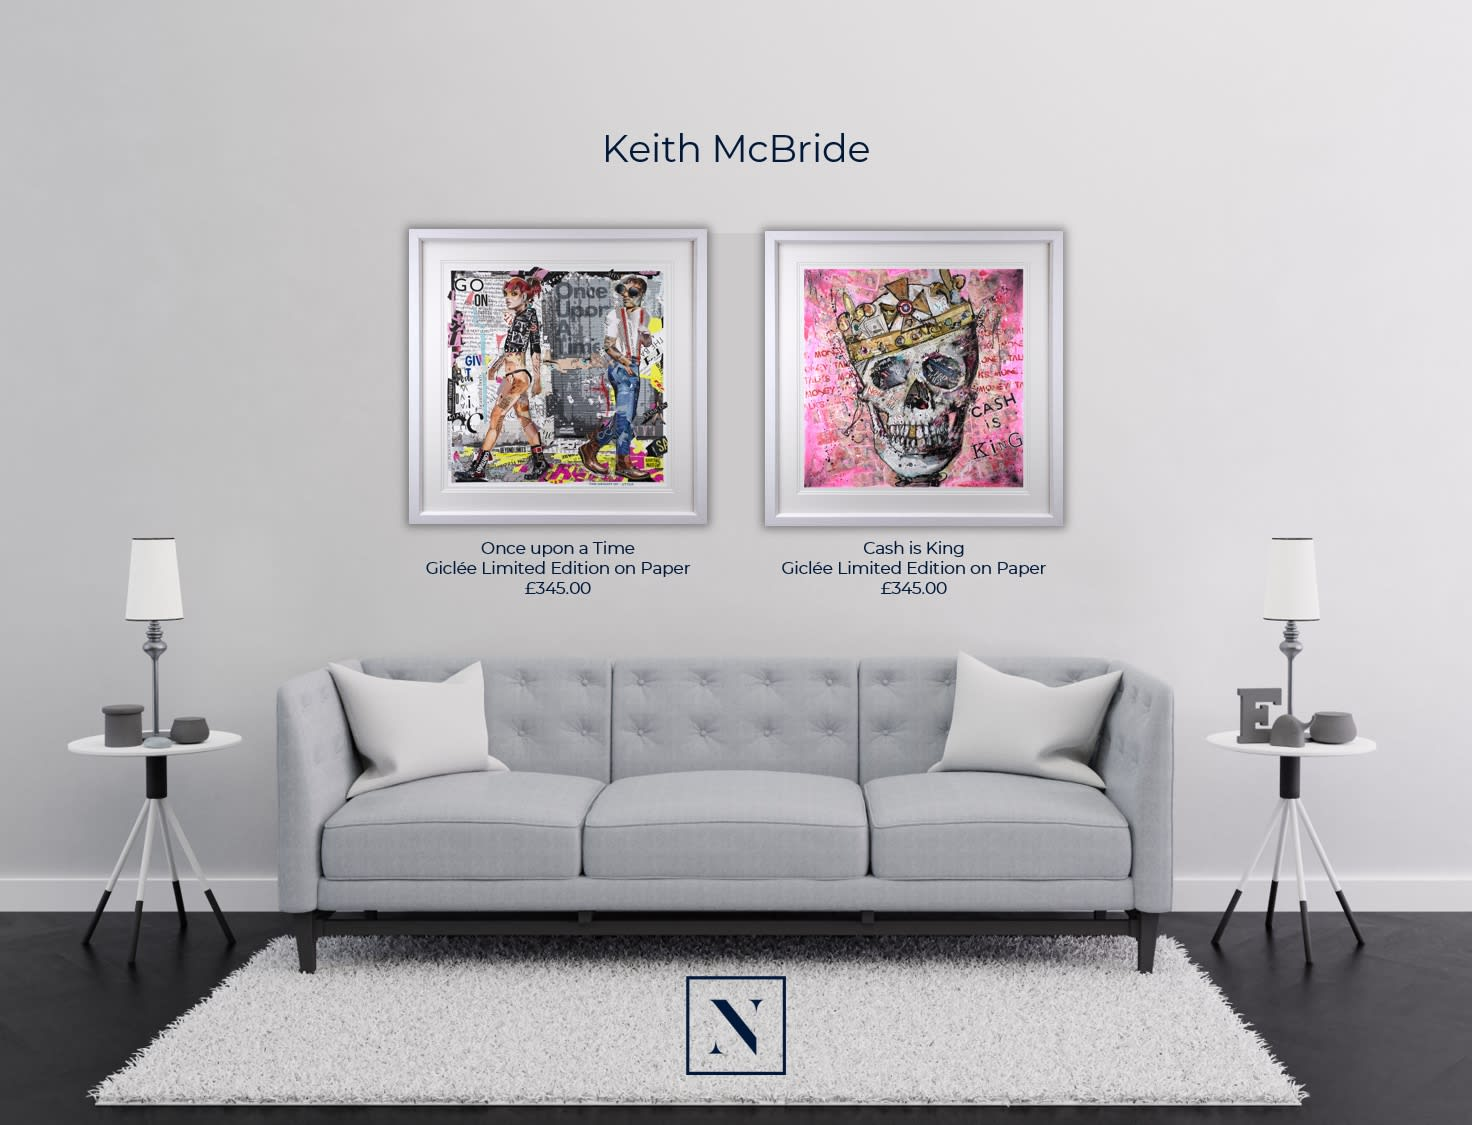 Keith McBride: BRAND NEW LAUNCH